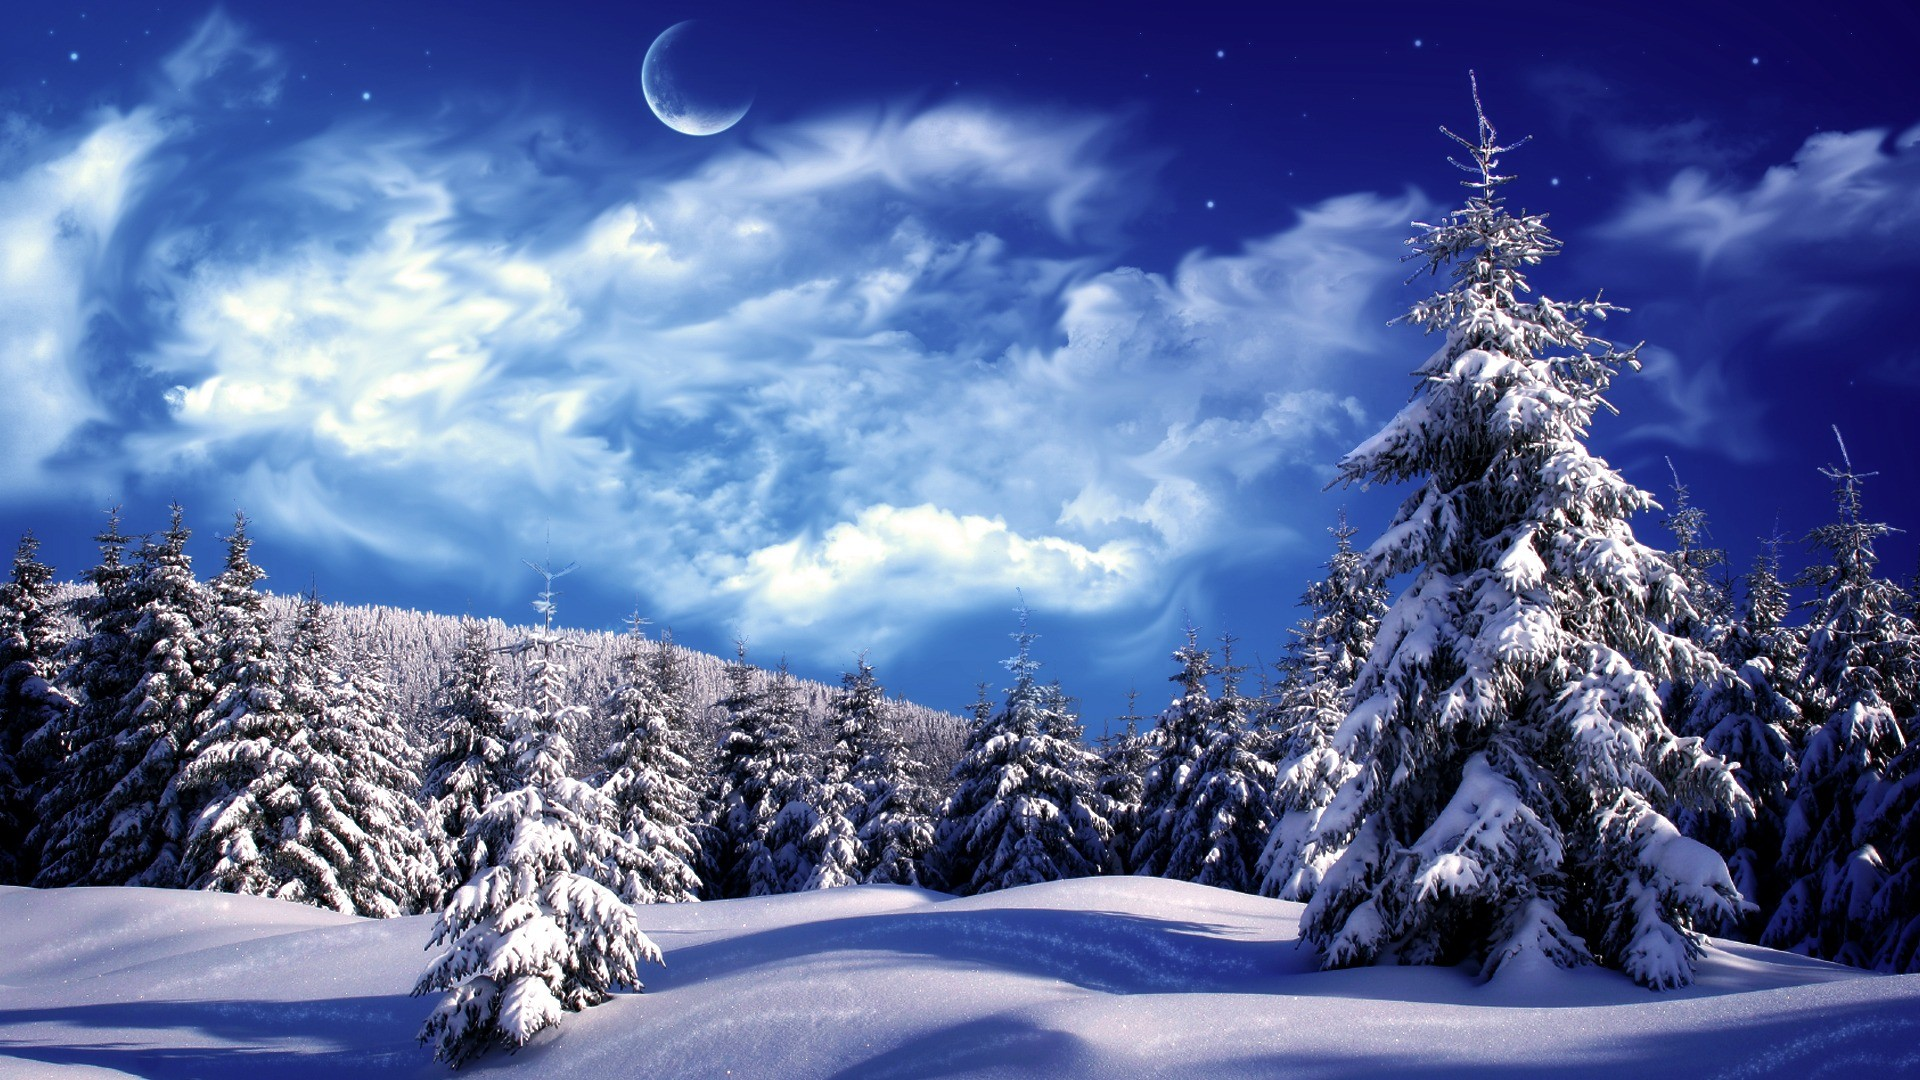 Snow Wallpaper HD Free Download